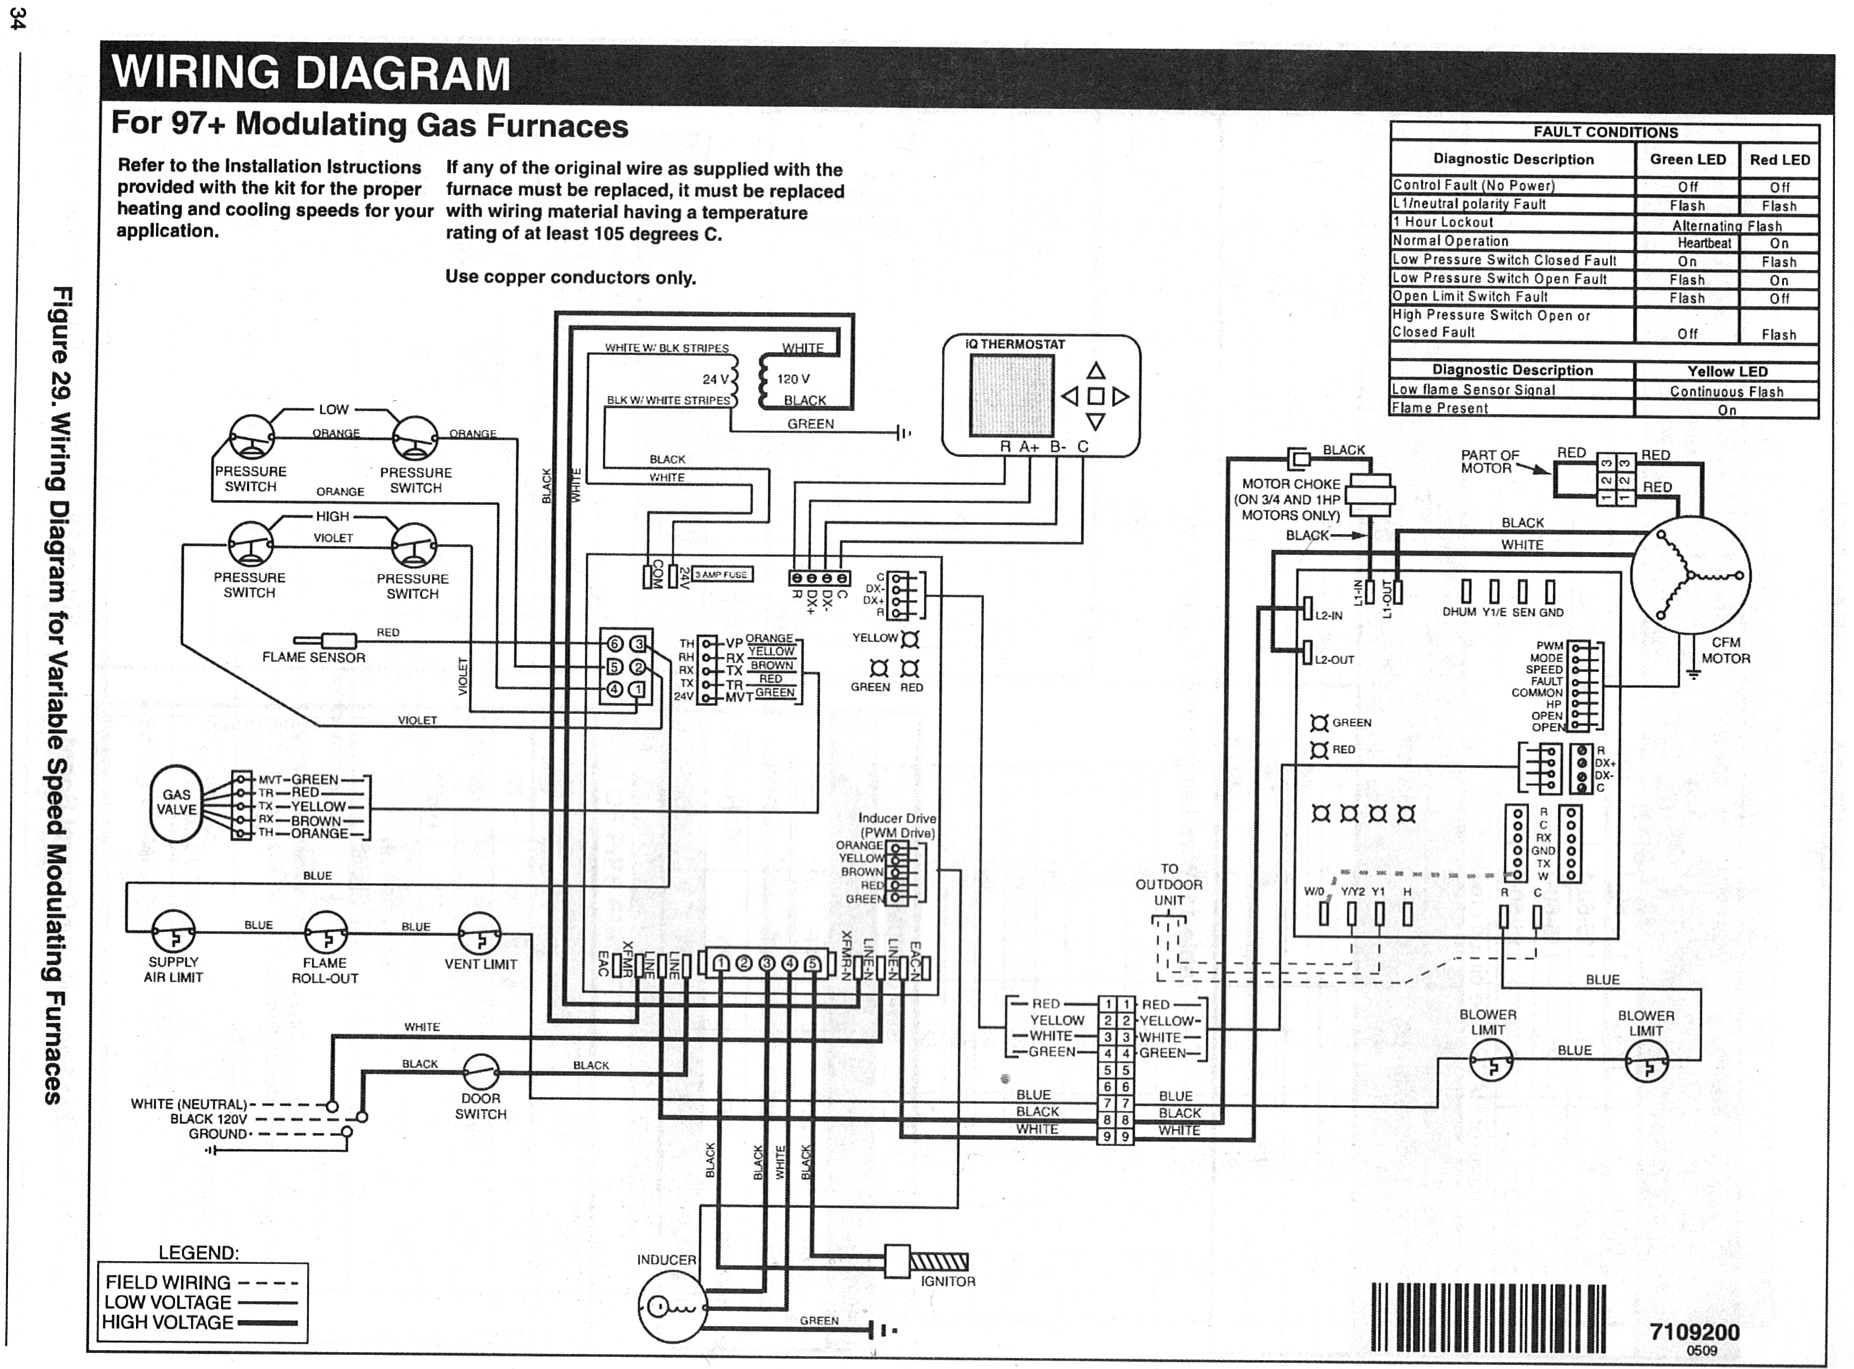 Wiring american standard gas furnace wiring diagrams efcaviation com american standard gas furnace wiring diagrams at reclaimingppi.co